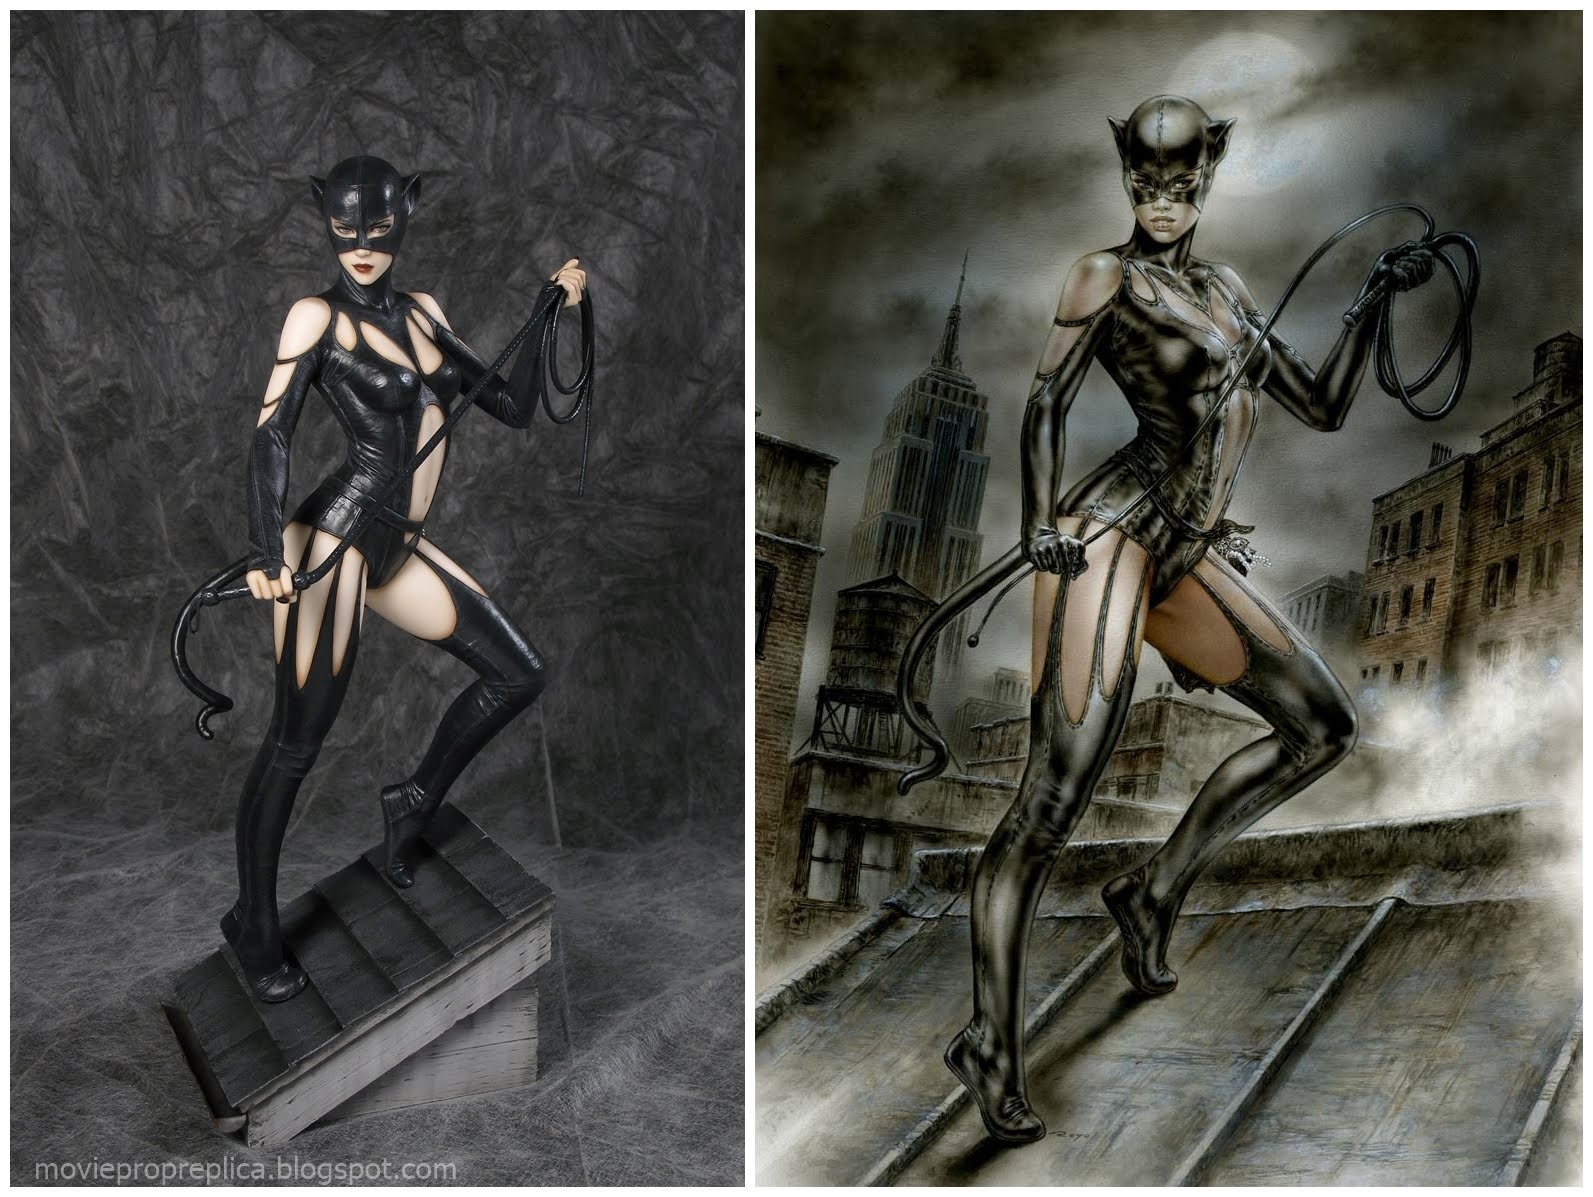 Catwoman by Luis Royo Statue